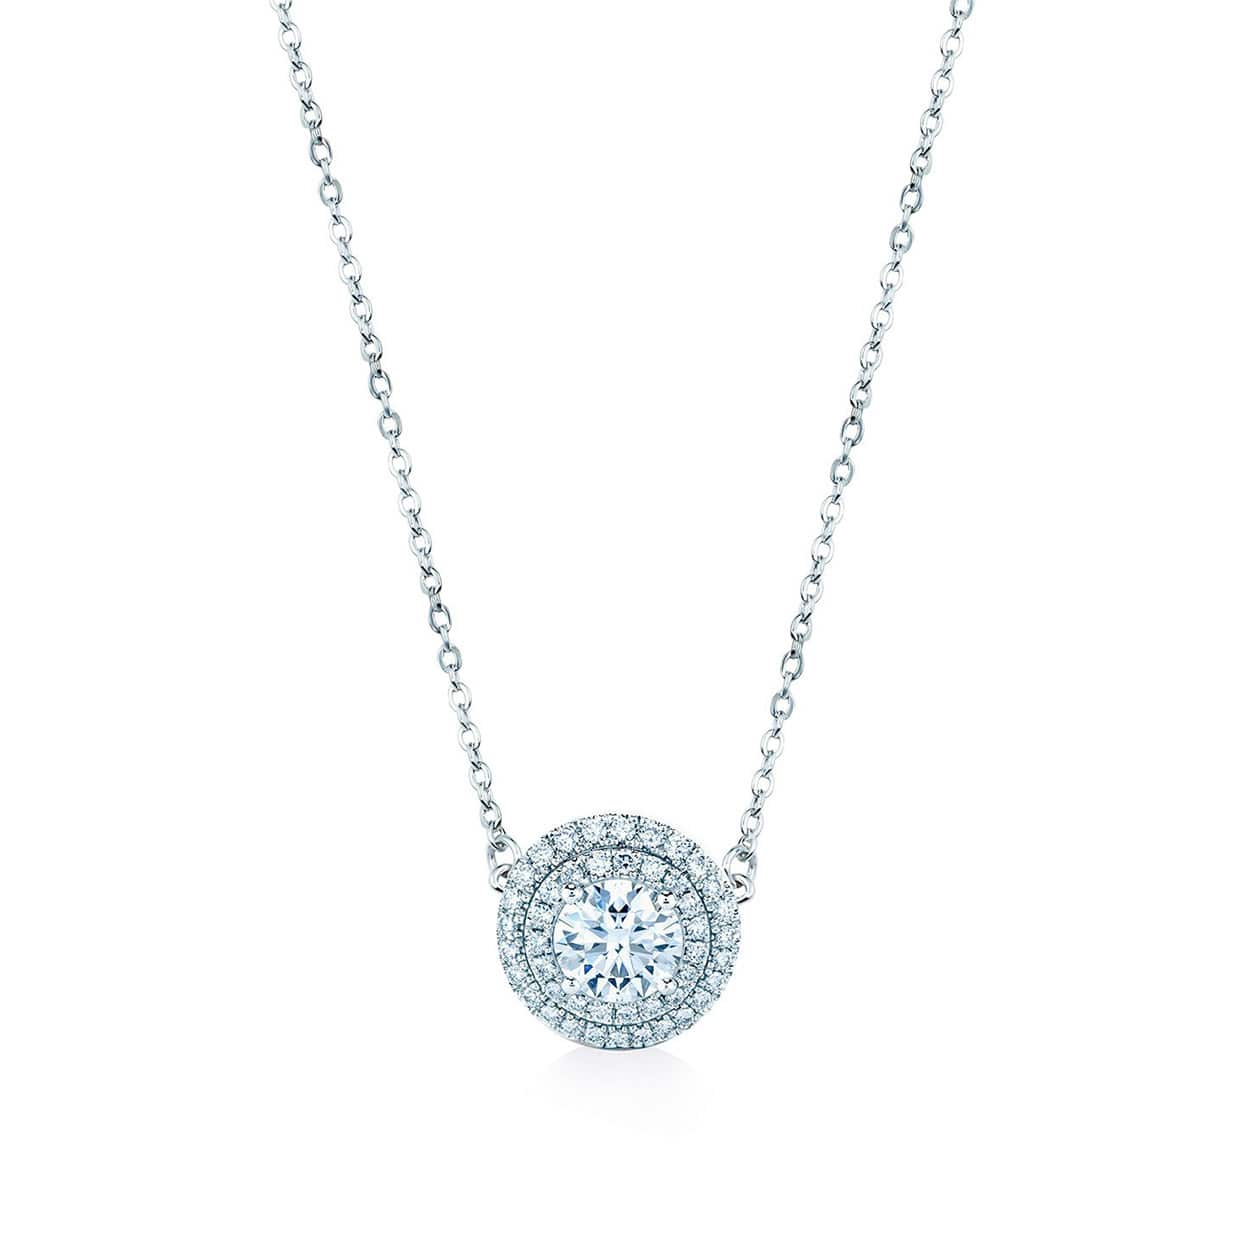 Oxford Silver White Double Halo Necklace - Abelstedt